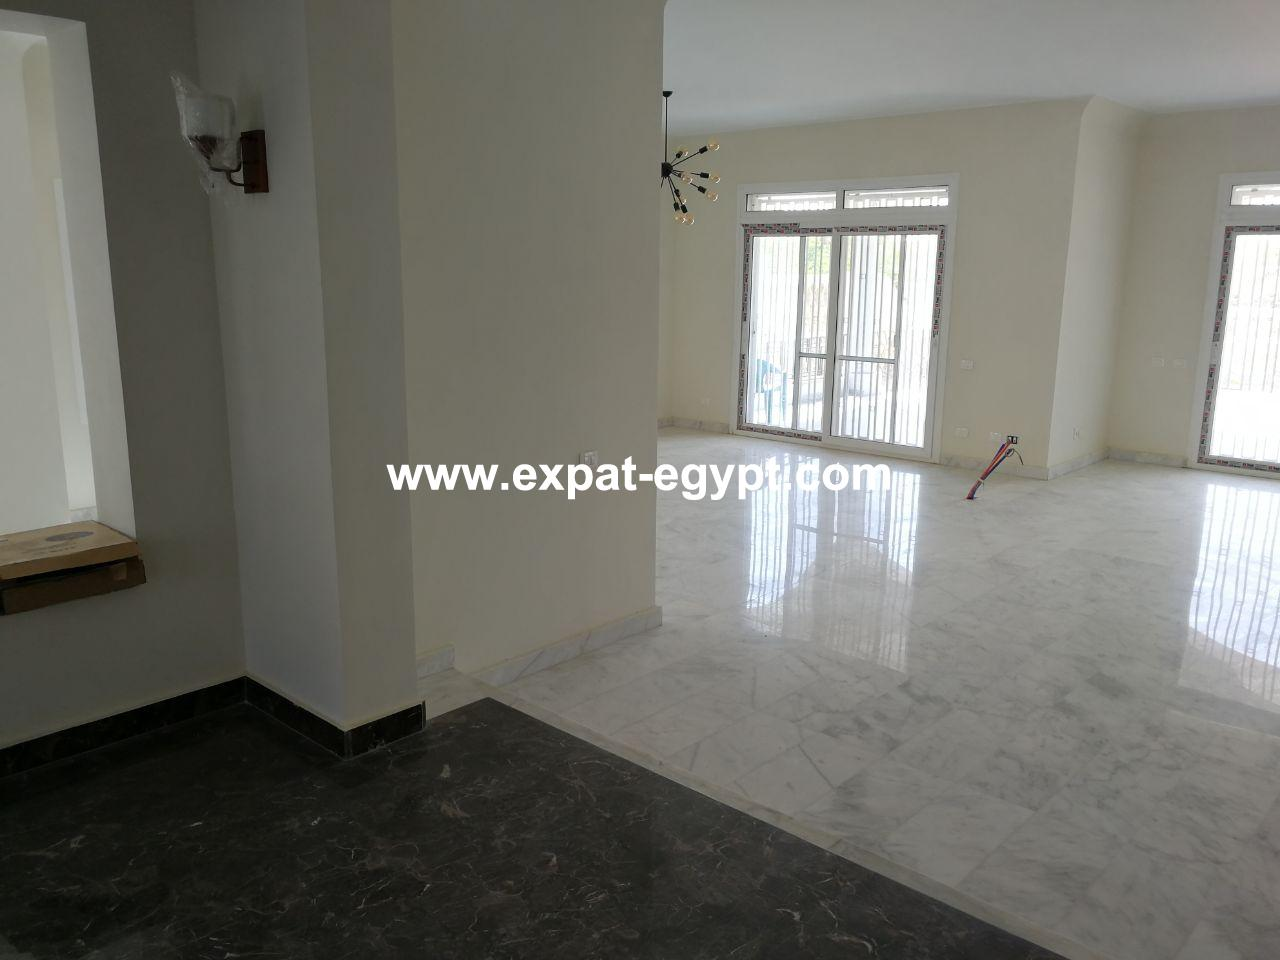 Villa For Rent in plam hills , 6th october , Cairo , Egypt